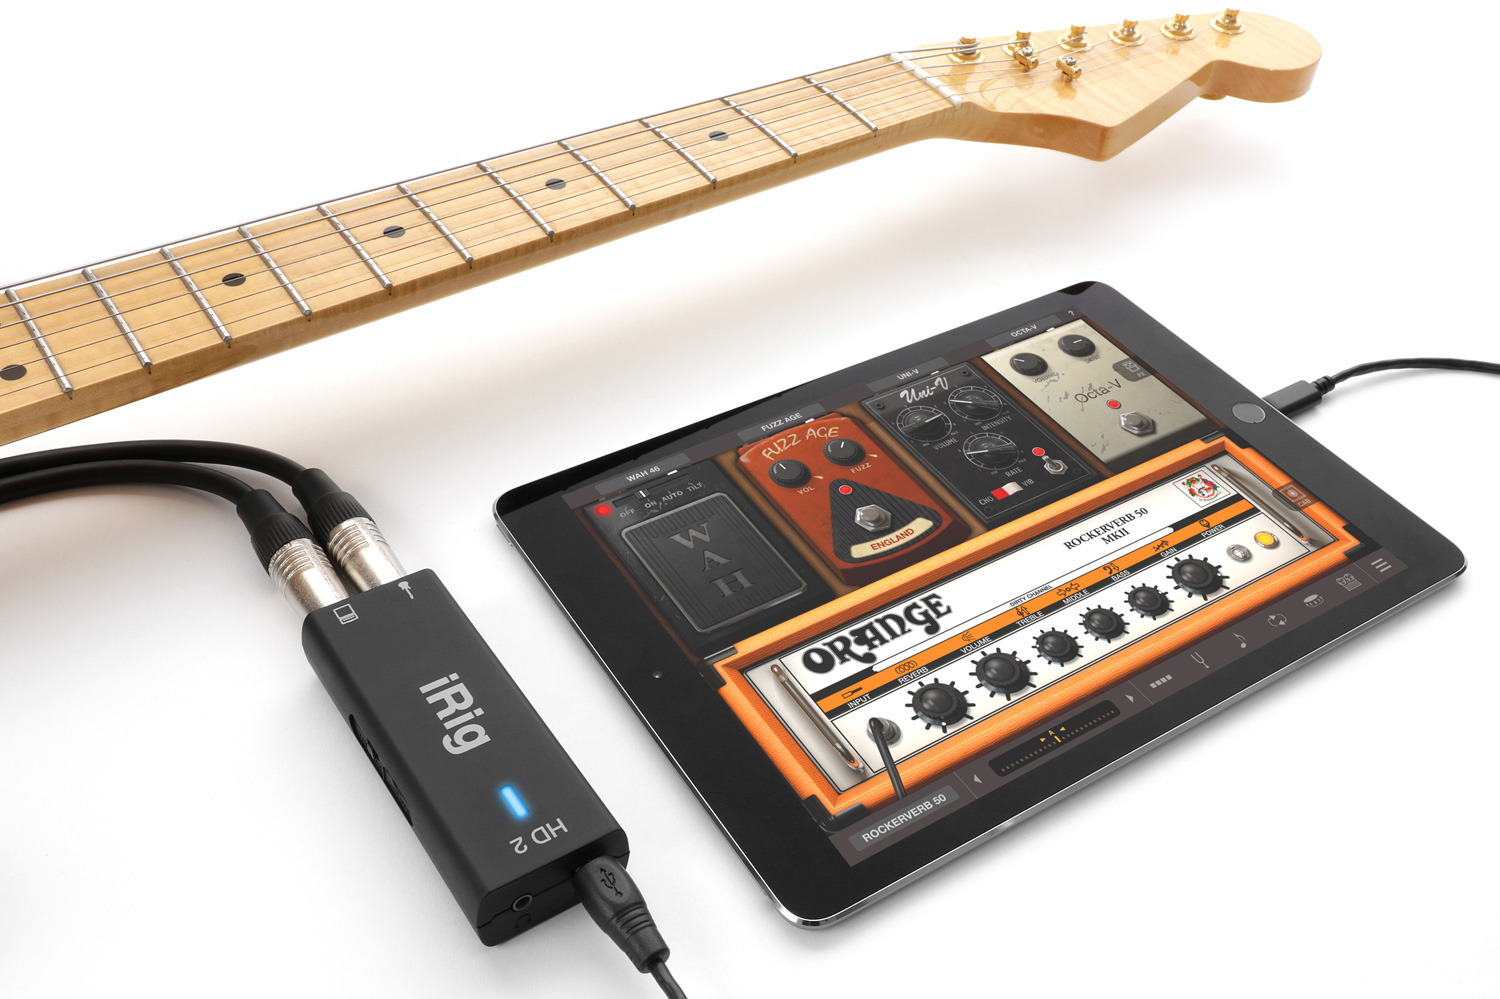 Fender Strat Guitar Jack Wiring Diagram Bought And Unboxed Irig Hd 2 Review Setup Guide Chalk Connection With Ipad